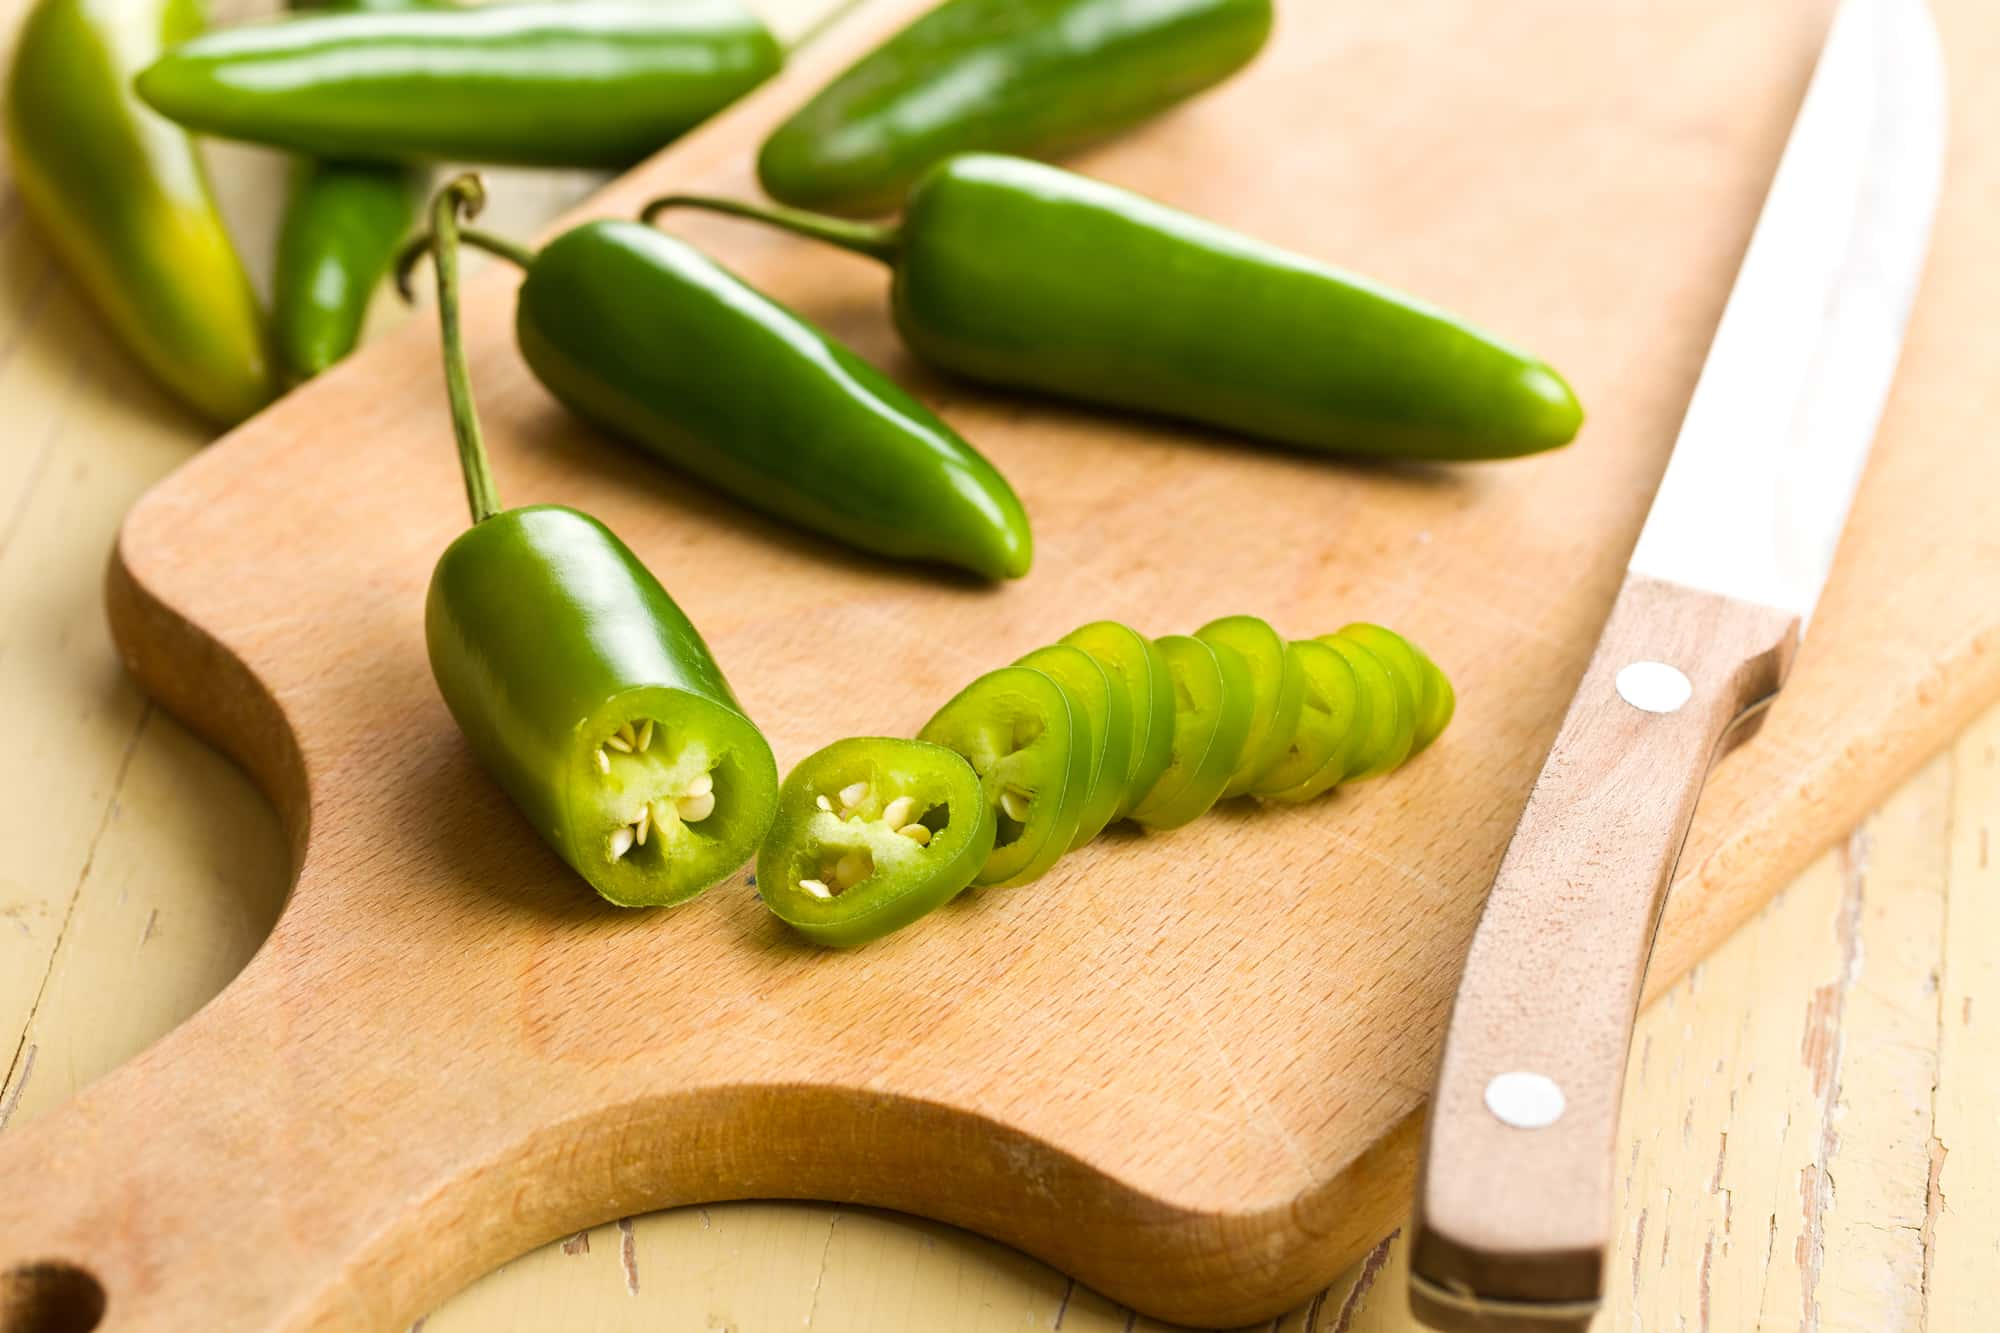 Cooking with jalapeño peppers